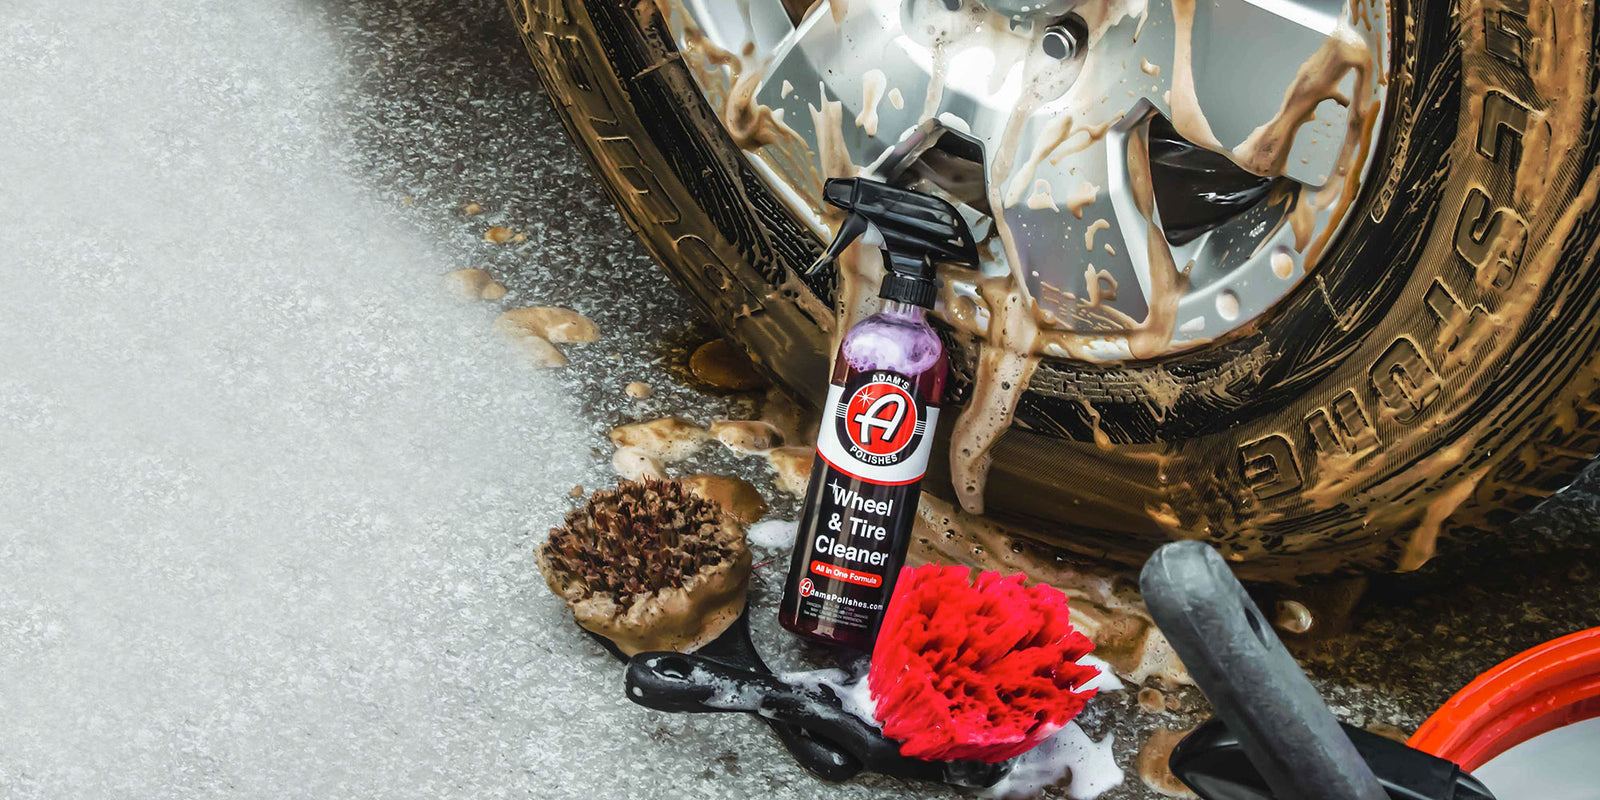 Adam's Polishes | Premium Car Care & Detailing Products